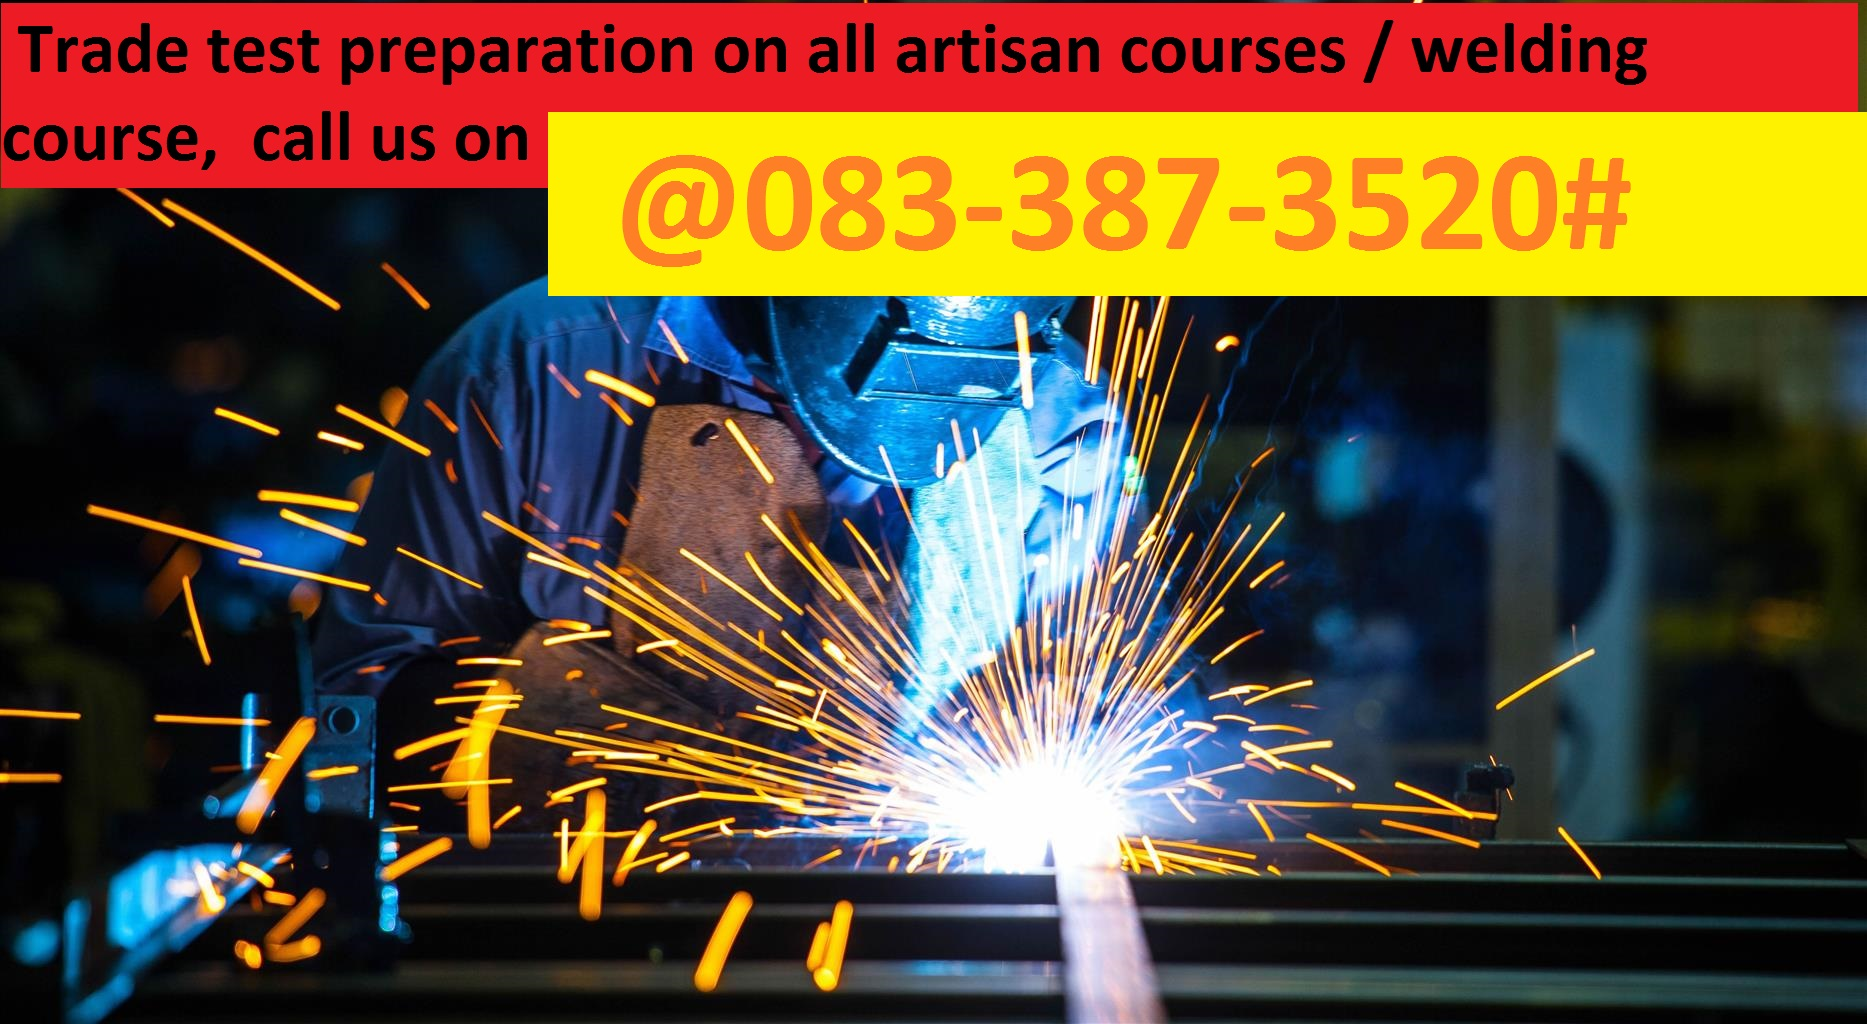 refrigeration. school of Artisan courses. school of welding courses.industrial boiler-making training. 079-455-8854